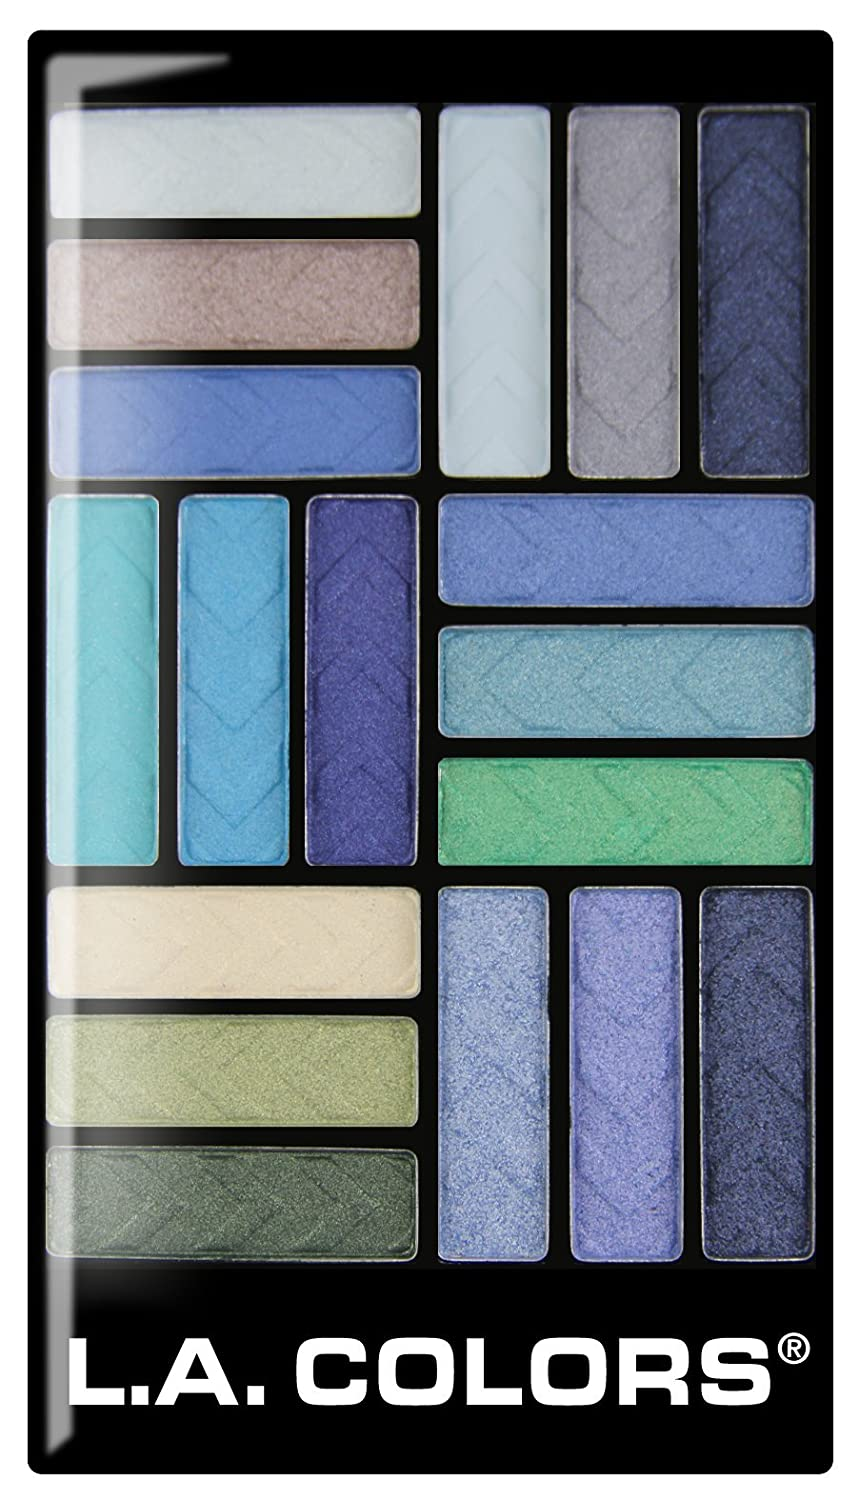 L.A. Colors 18 Color Eyeshadow Palette, Shady Lady, 0.70 Ounce